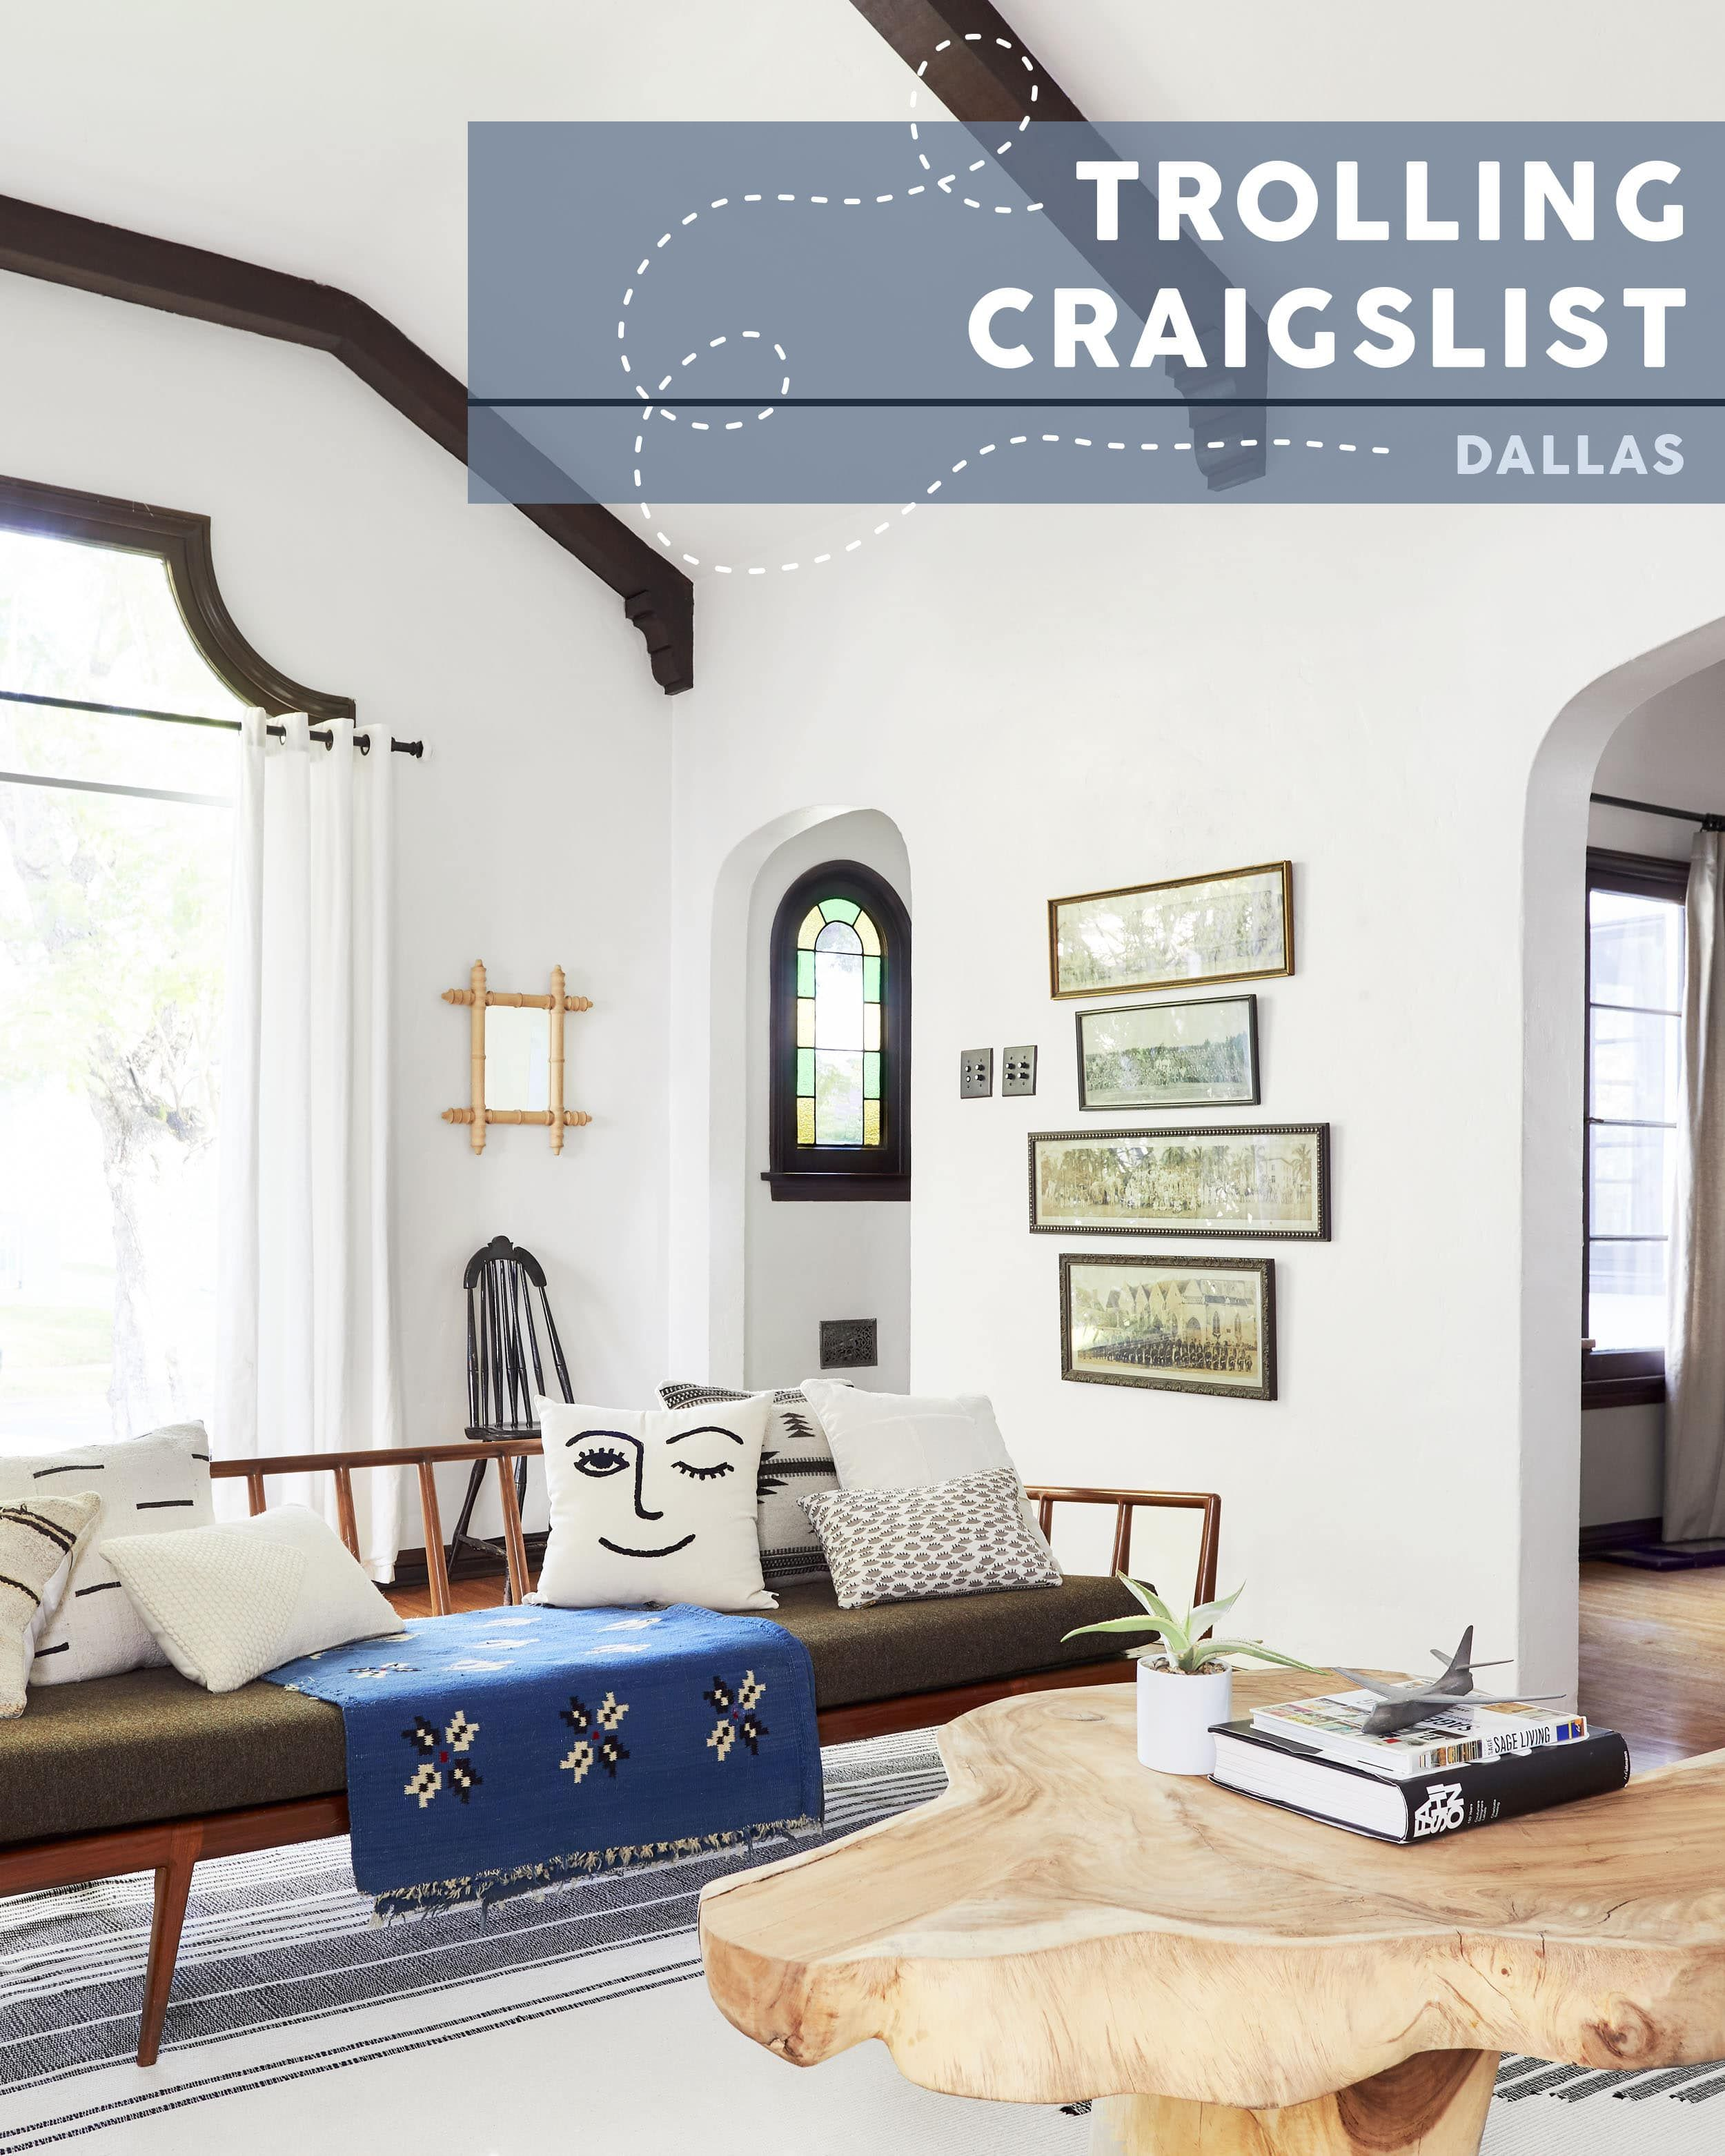 50 Bentwood Chairs 10 Stools Free Bookcases The Best Dallas Craigslist Finds Right Now Living Room Stools Comfortable Dining Chairs Bentwood Chairs